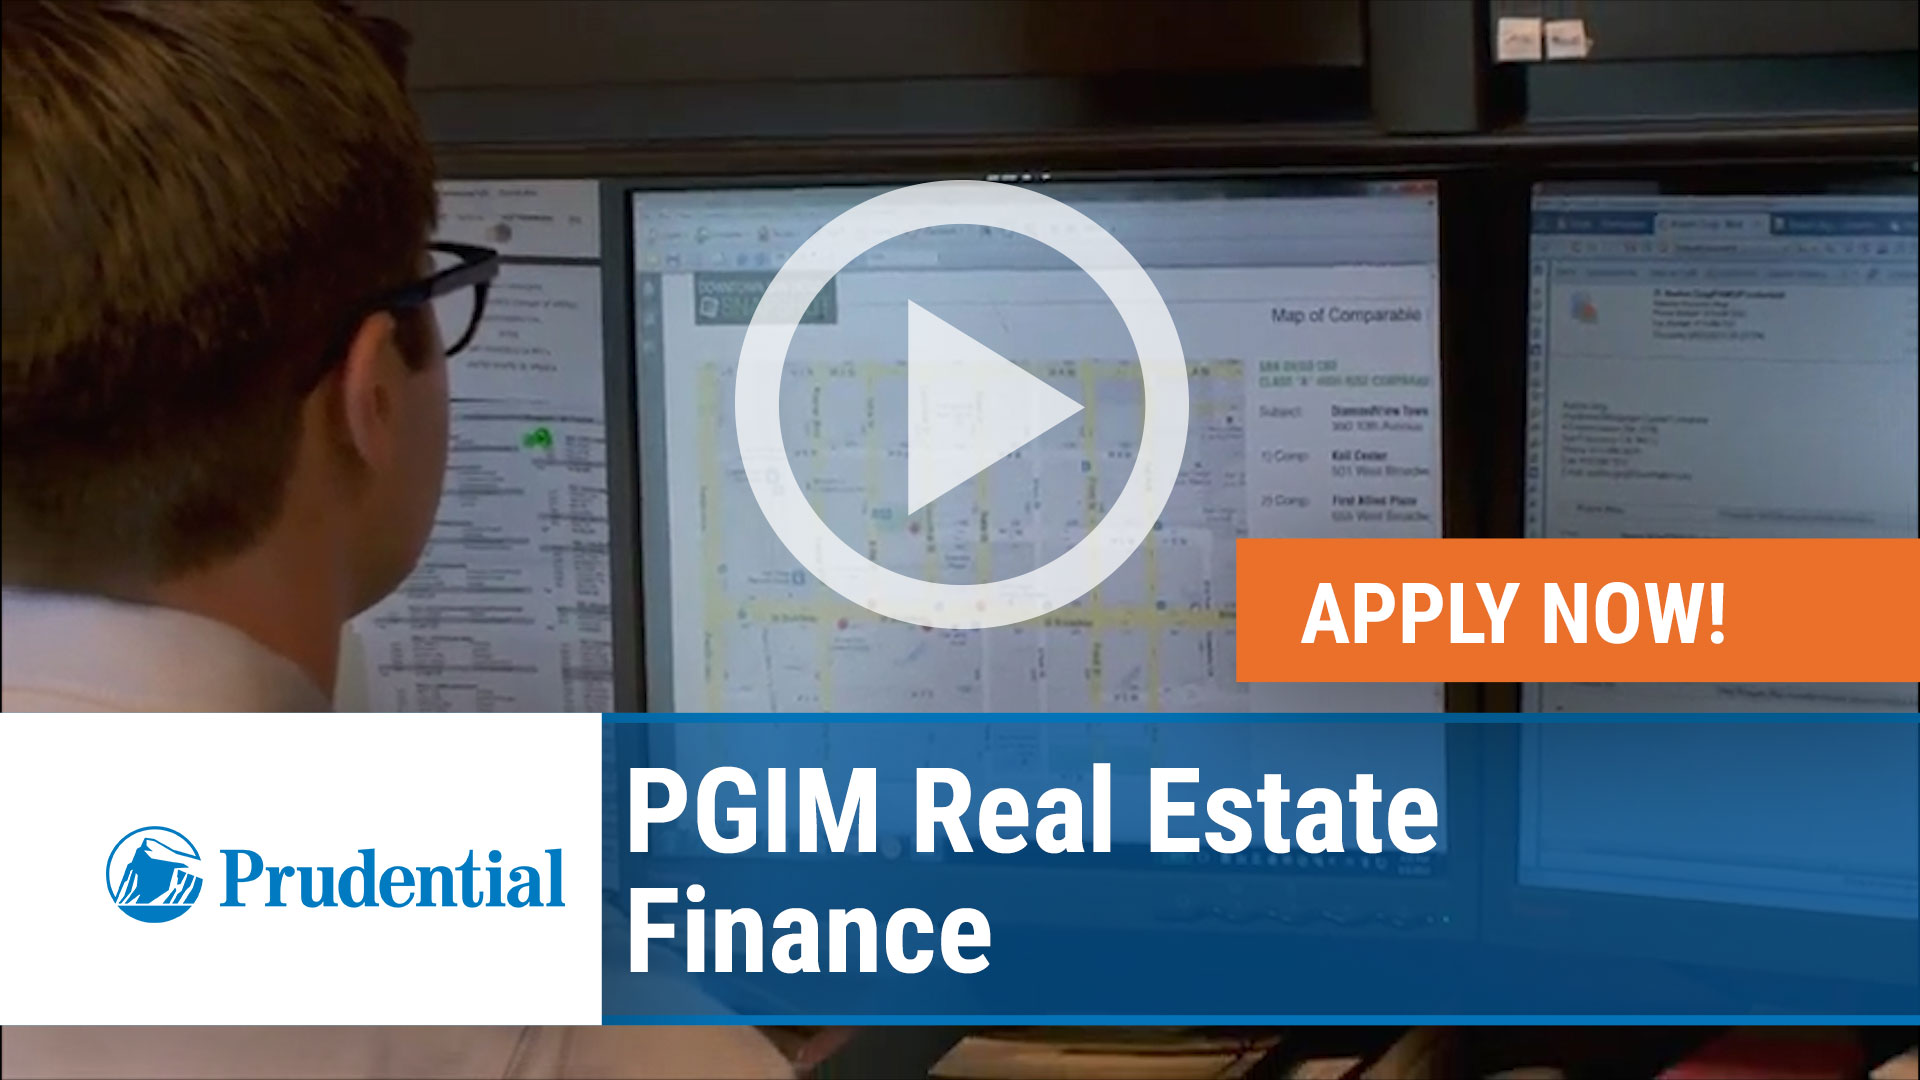 Watch our careers video for available job opening PGIM Real Estate Finance in Dallas, TX